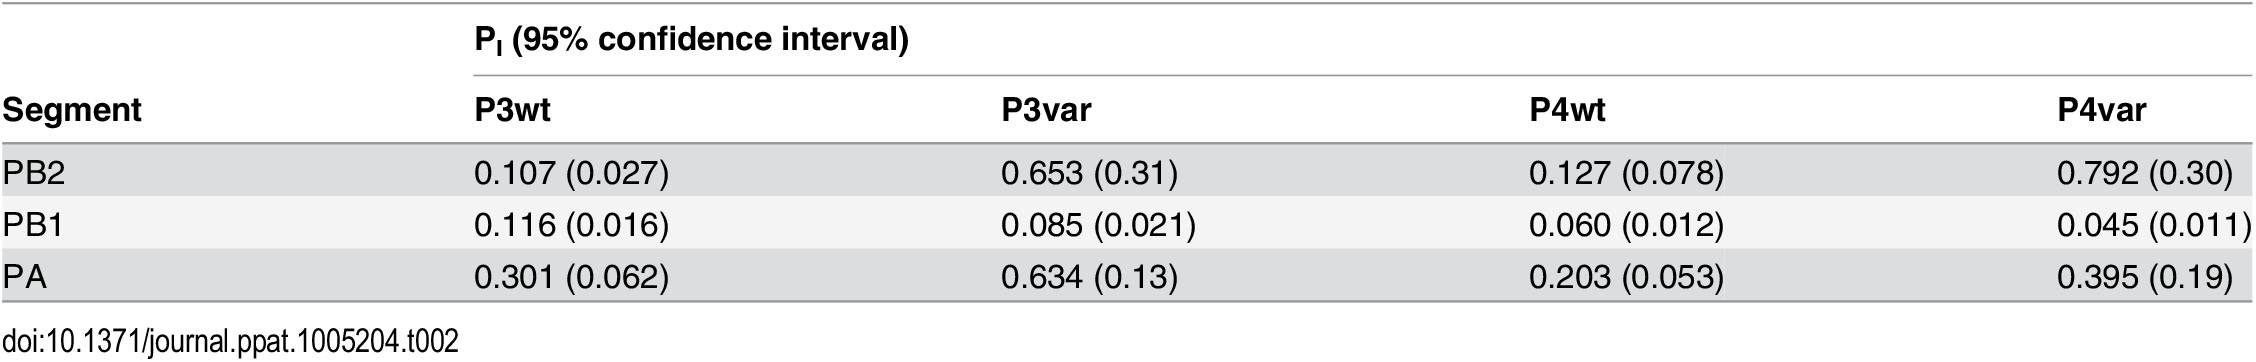 Proportion of polymerase segments intact in P3 and P4 viruses, relative to P0 viruses.